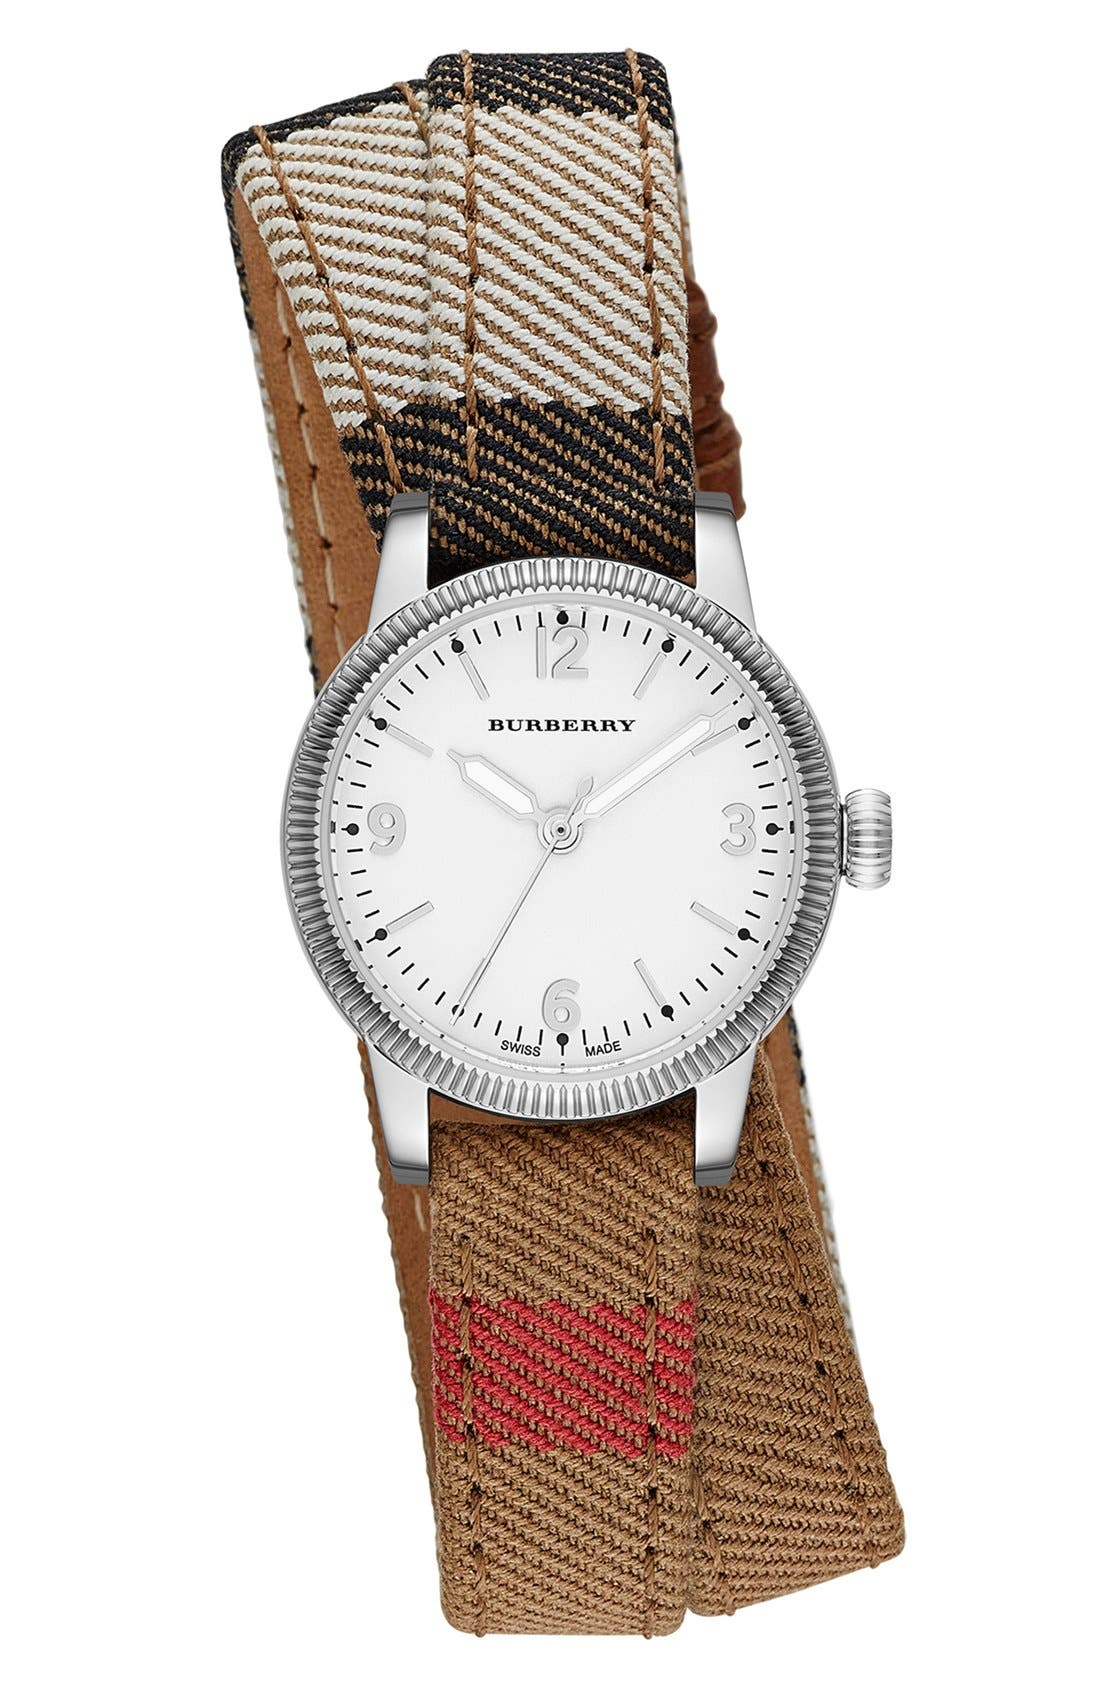 Alternate Image 1 Selected - Burberry 'Utilitarian' Round Check Wrap Watch, 30mm